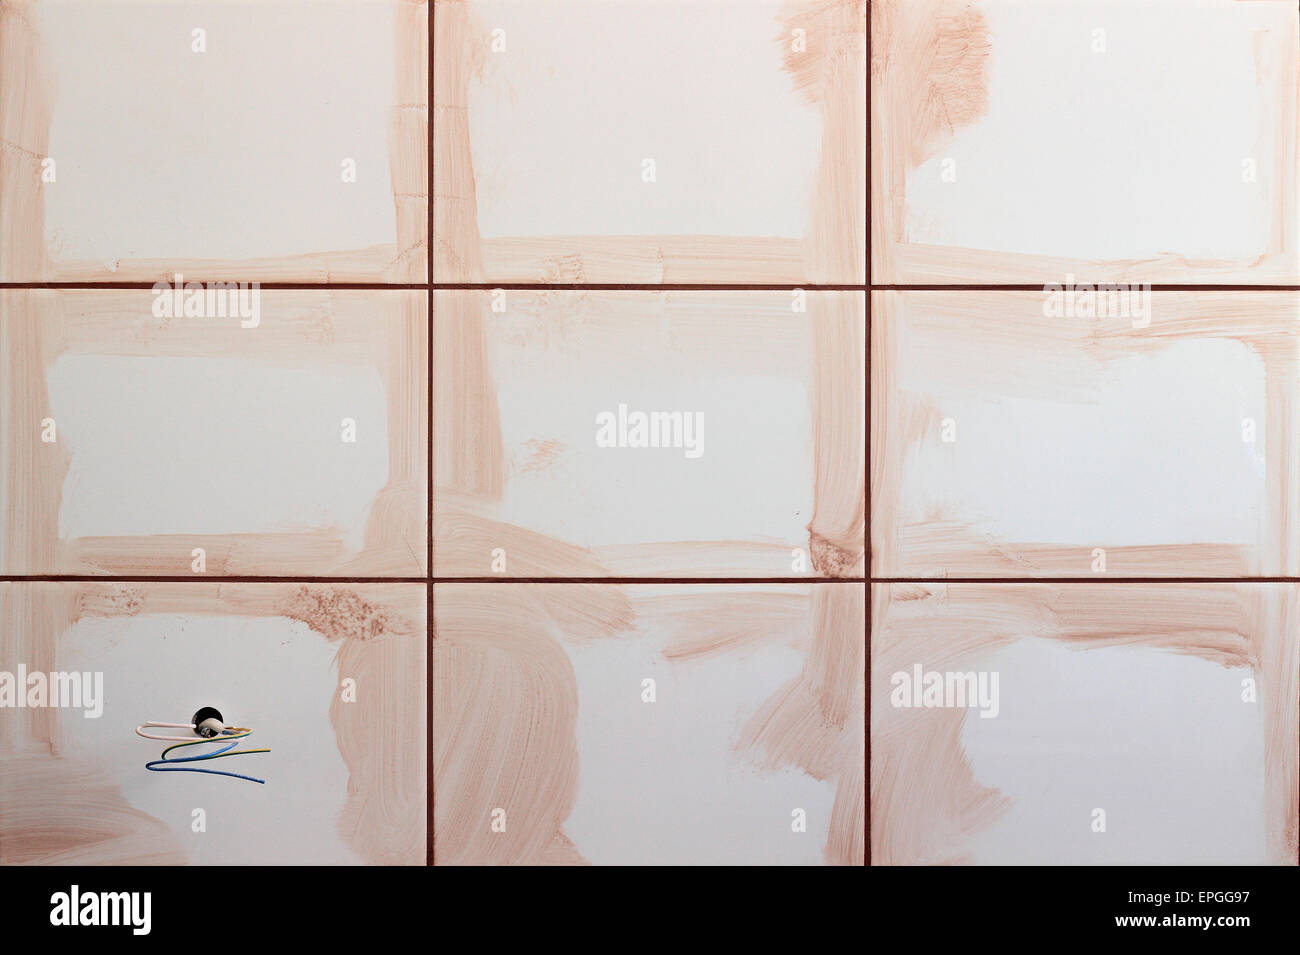 Jointing of a white tile cement of cream color. - Stock Image